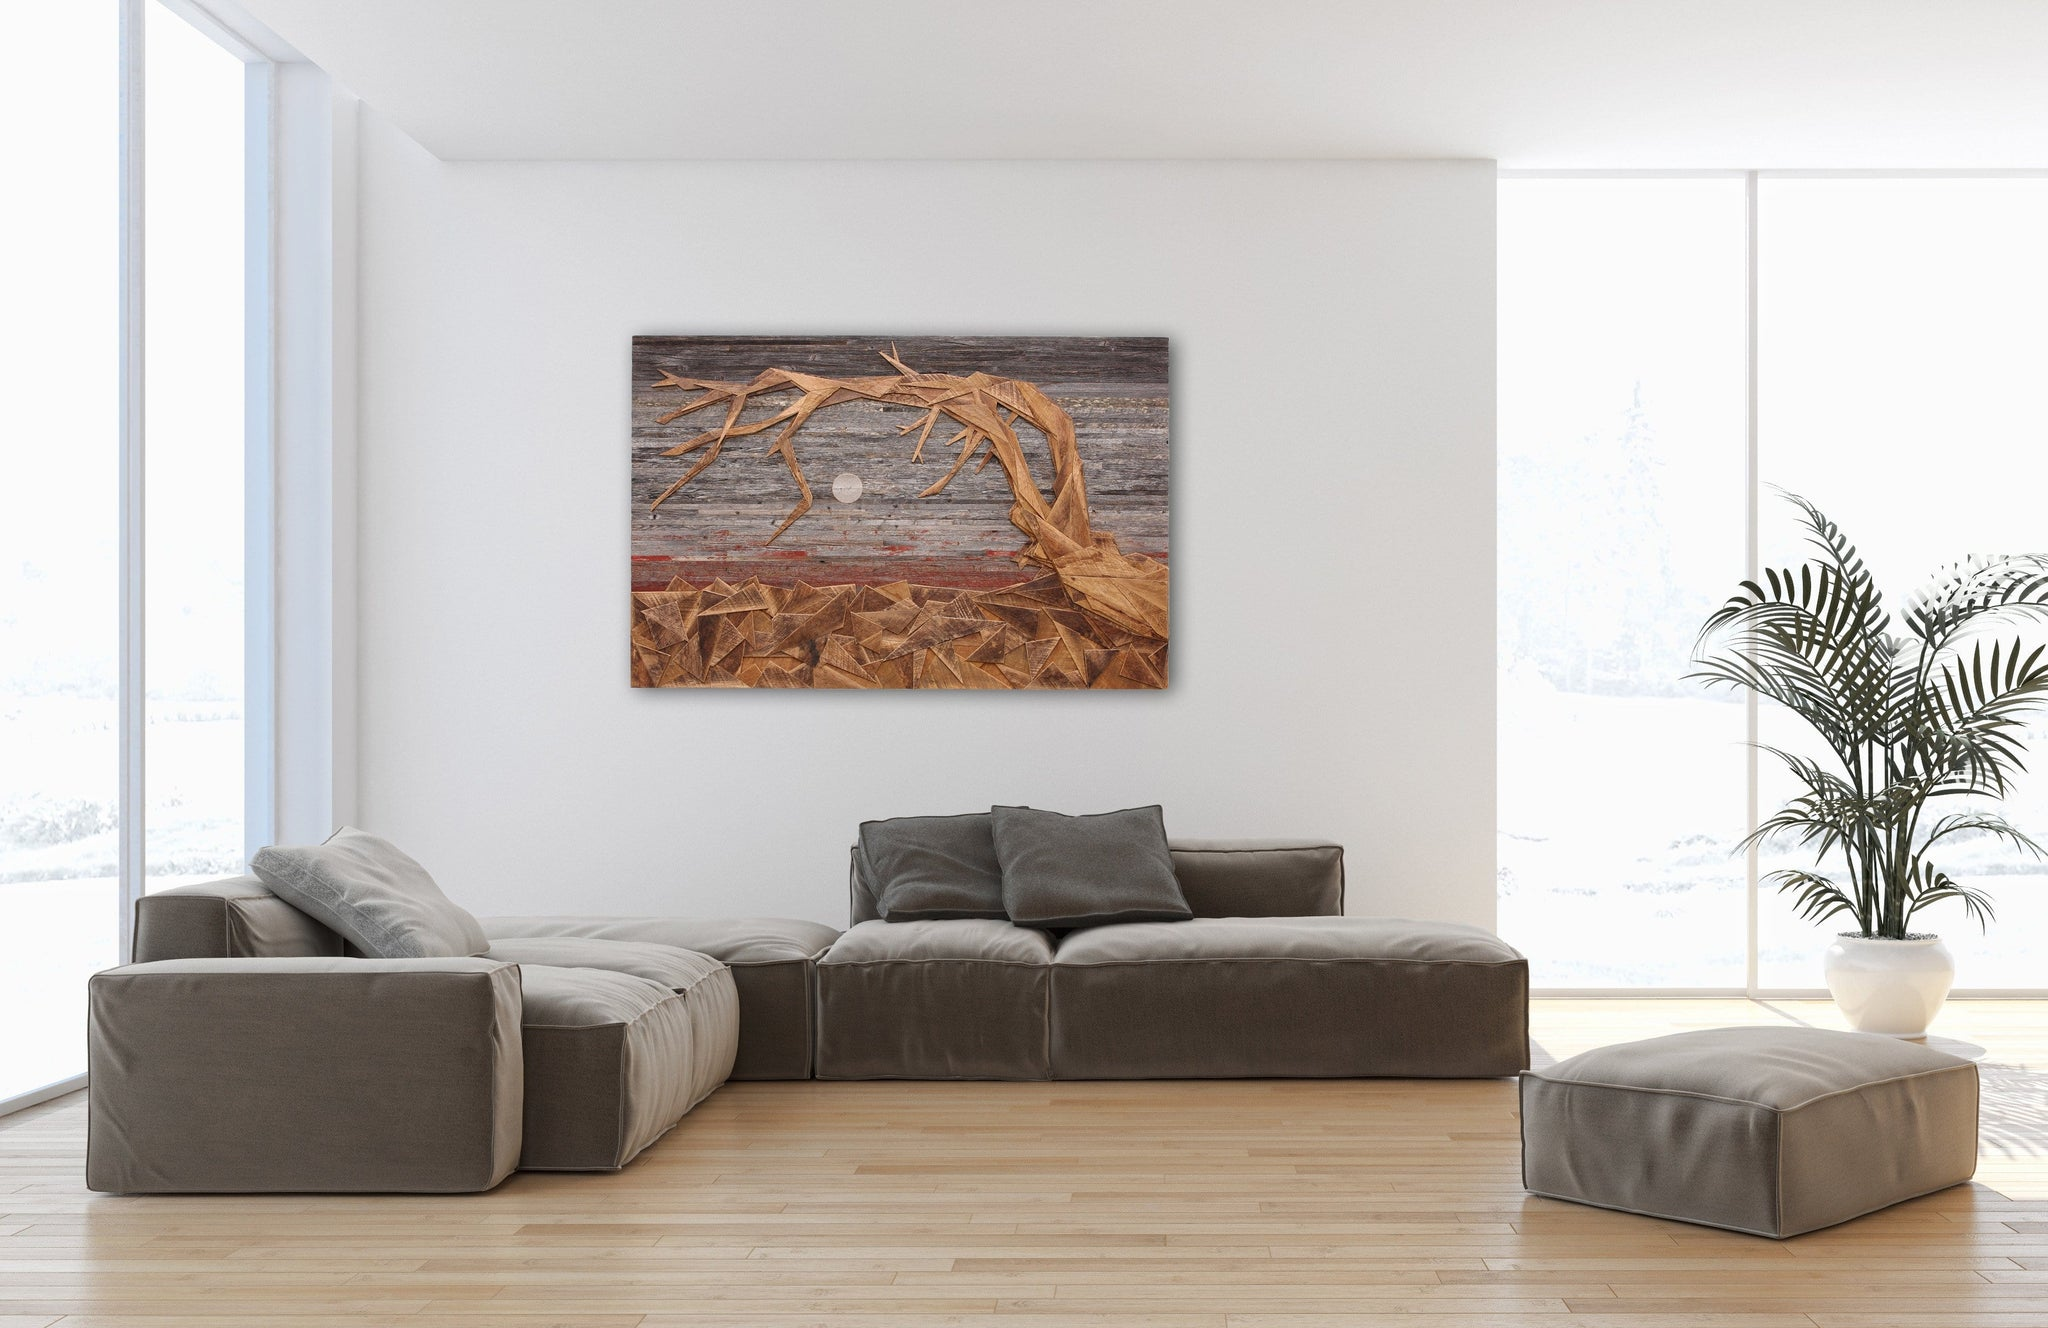 Jeffrey Pine, yosemite national park, wood wall art